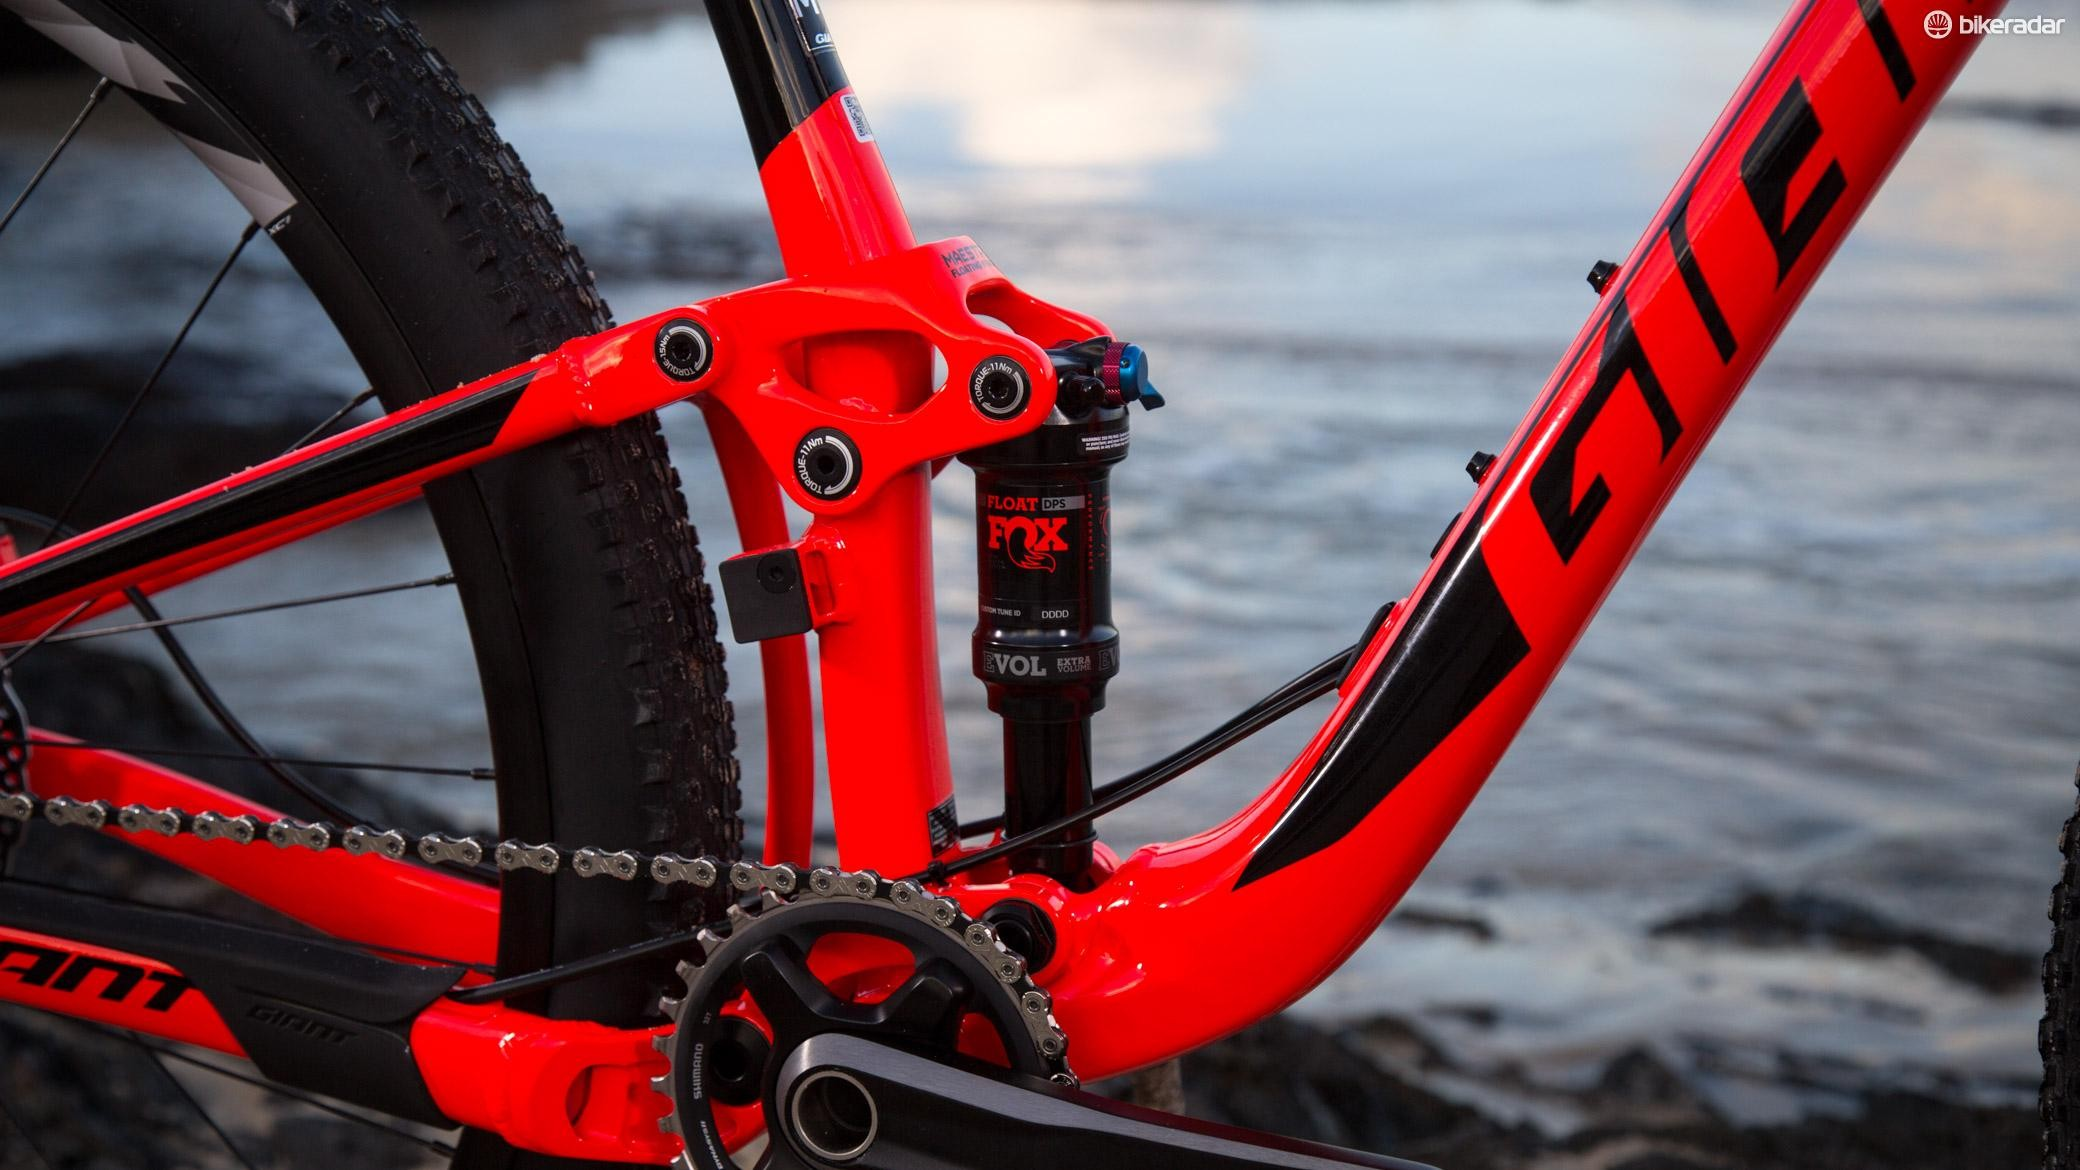 Giant reduced the rear travel to 90mm, aiming for quality over quantity